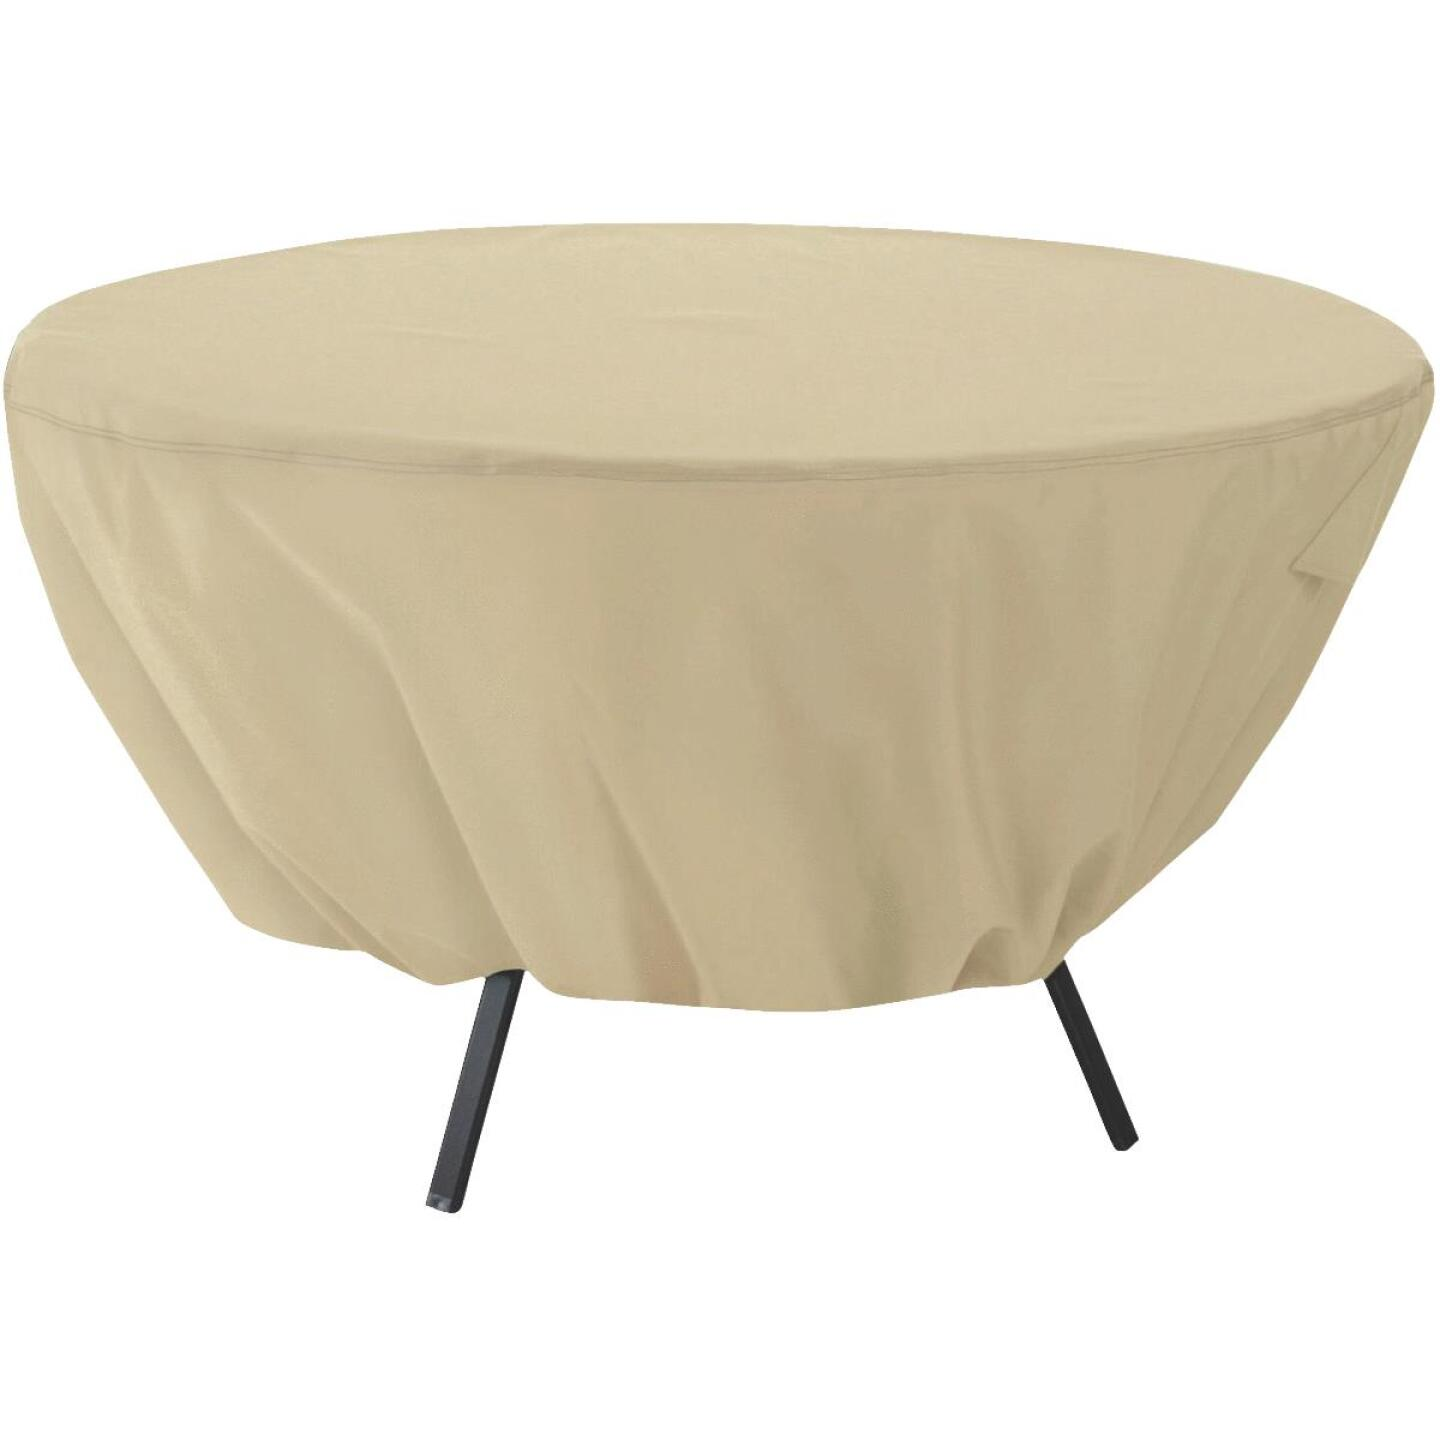 Classic Accessories 23 In. H. x 50 In. D. Tan Polyester/PVC Table Cover Image 1